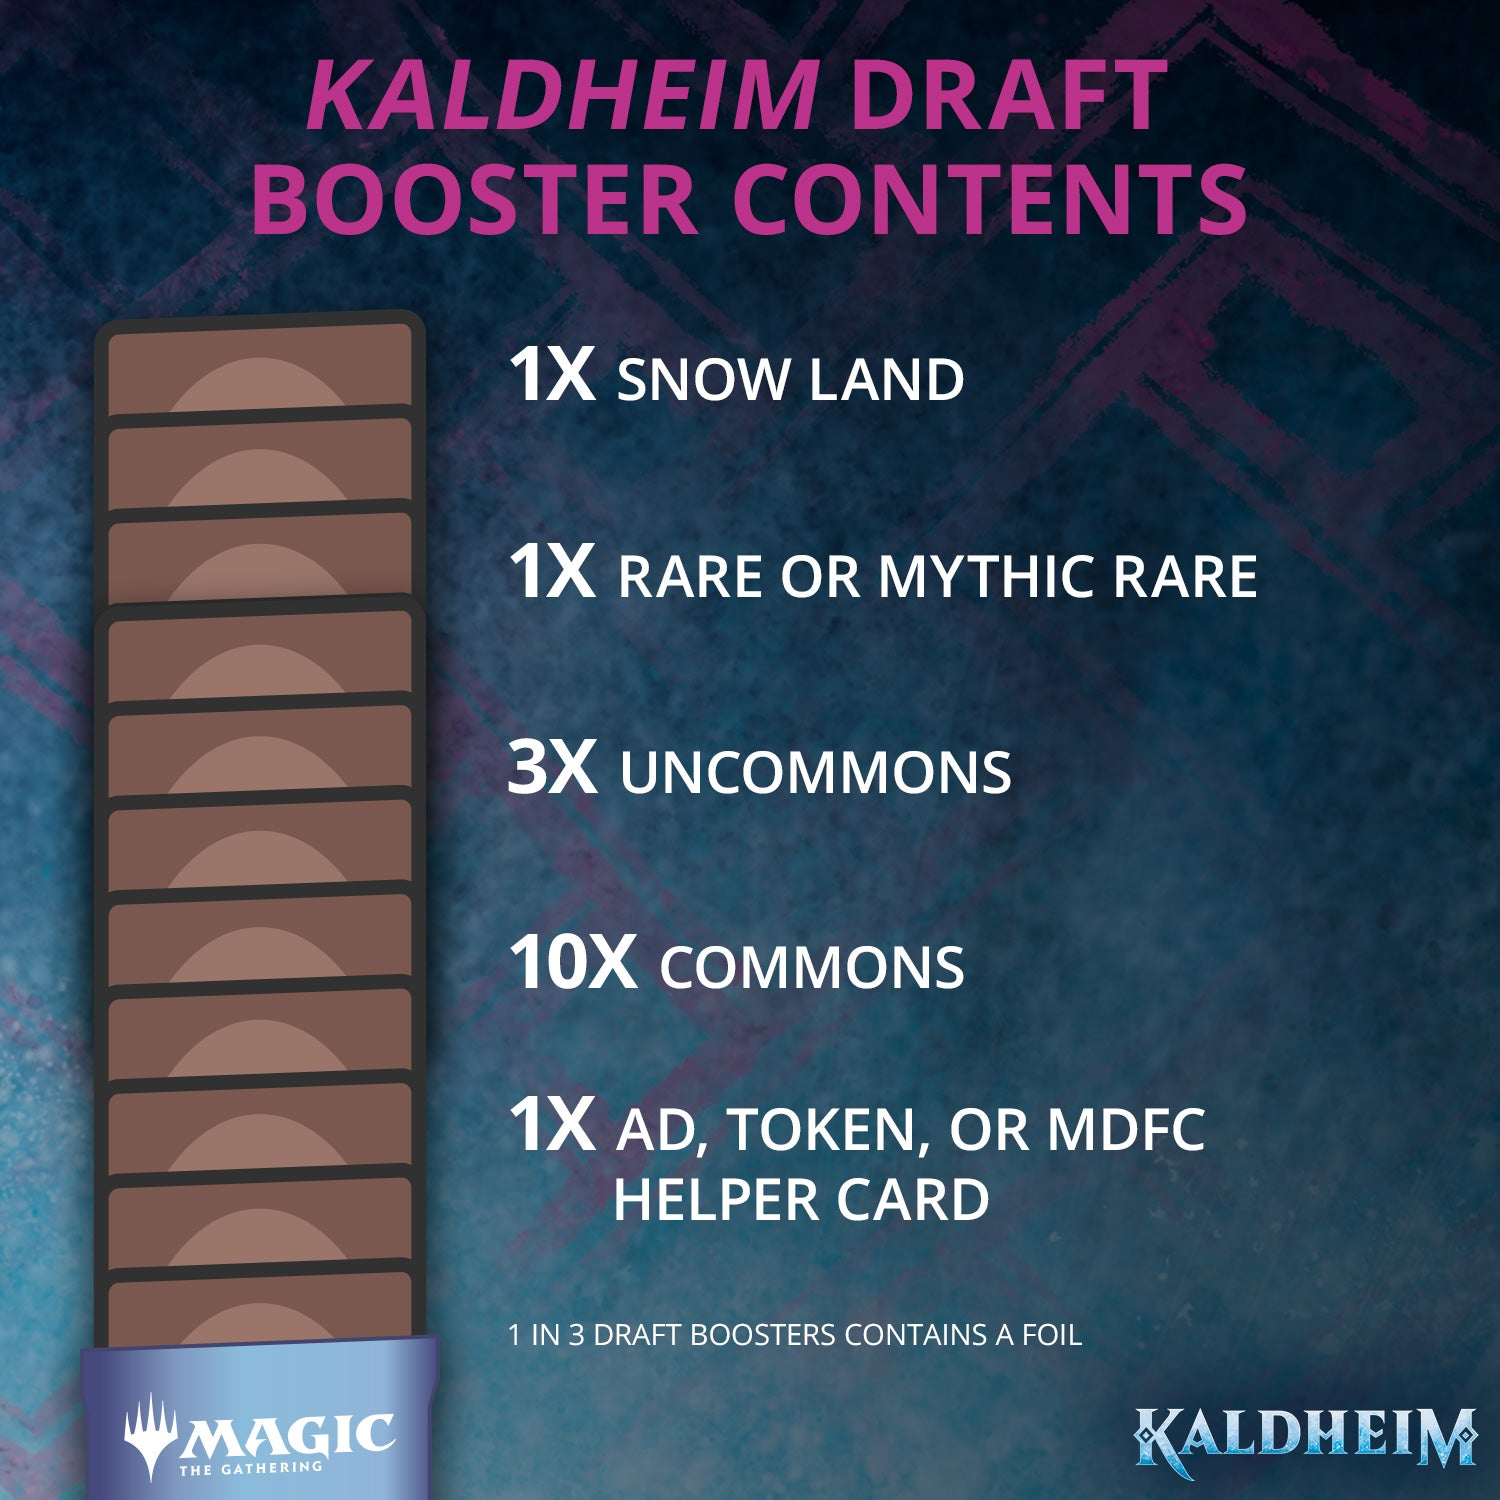 Kaldheim Draft Booster Box | Pro Gamers and Collectables